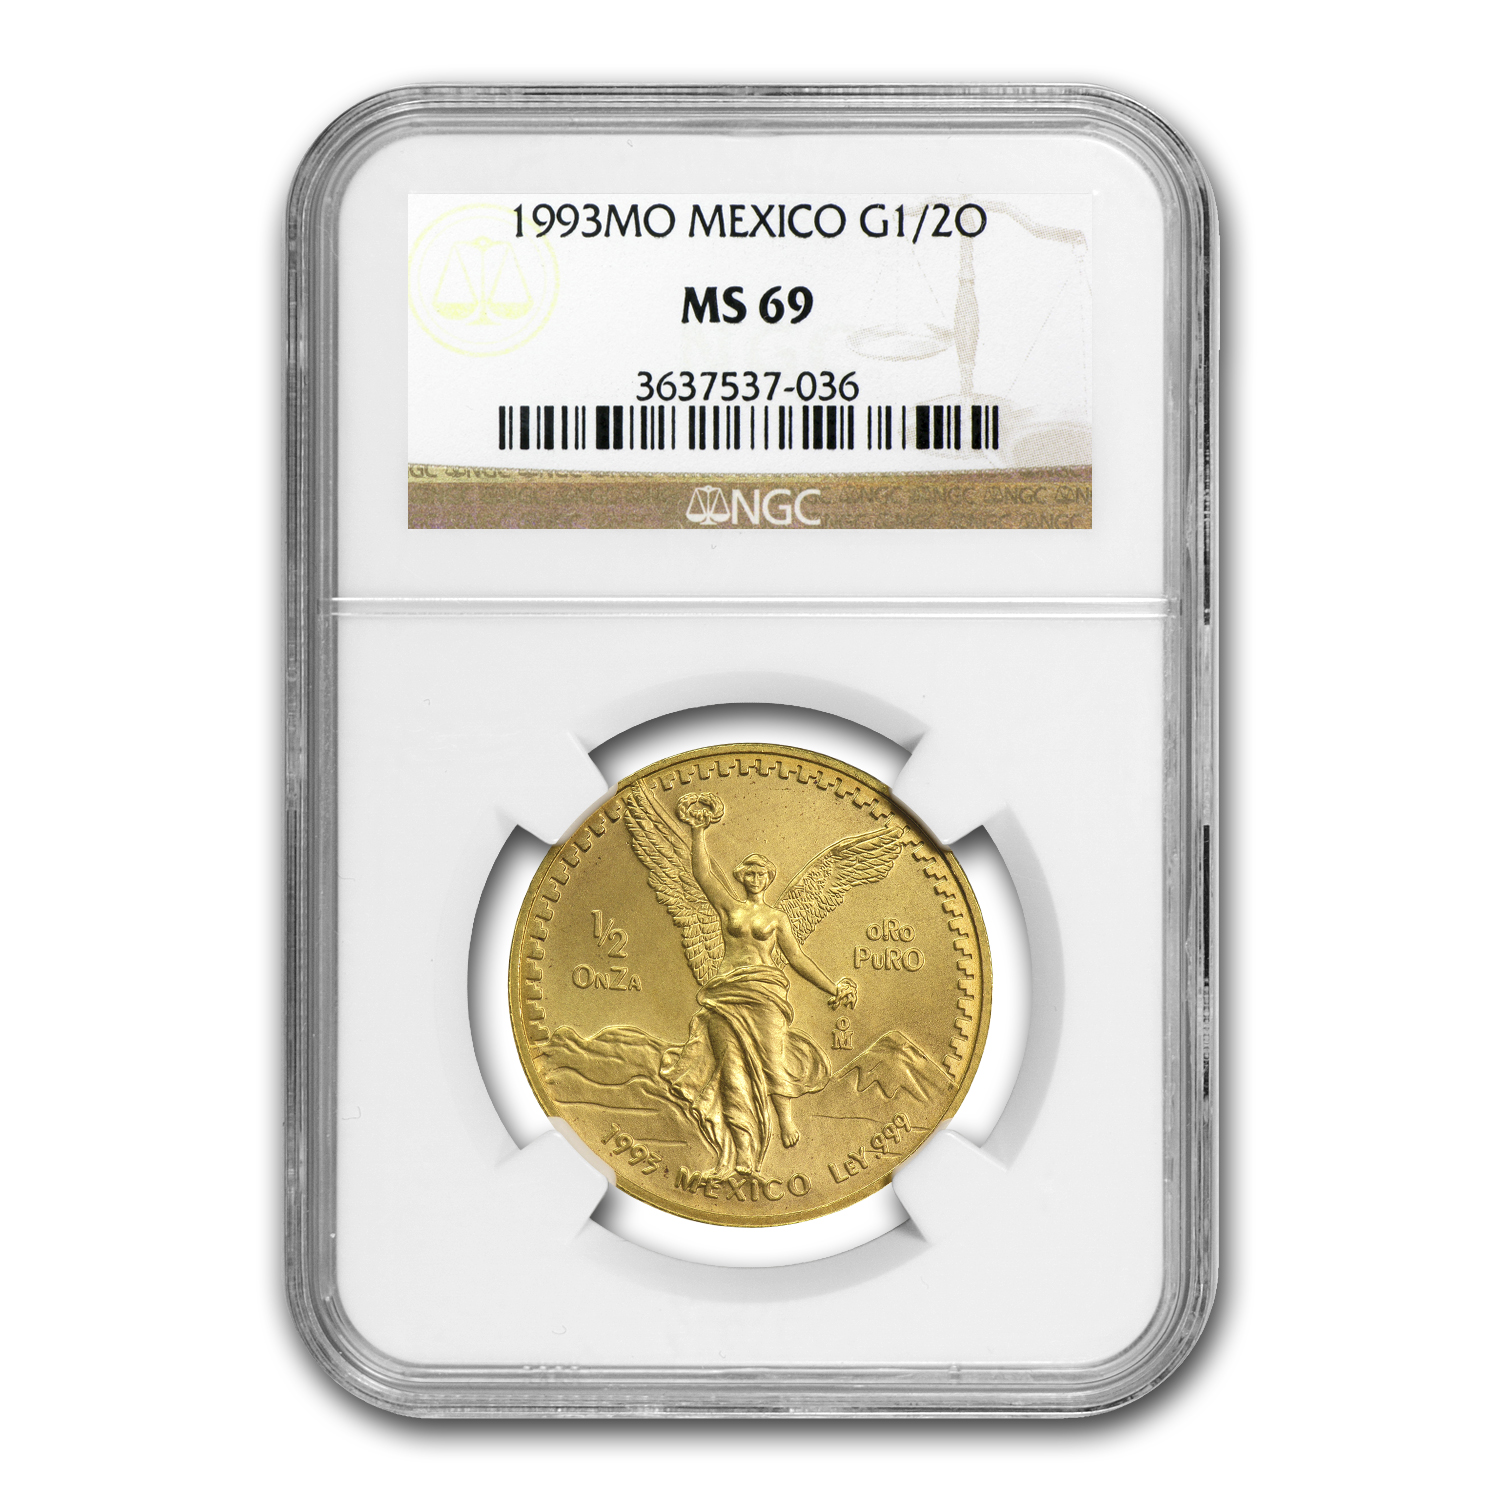 1993 Mexico 1/2 oz Gold Libertad MS-69 NGC